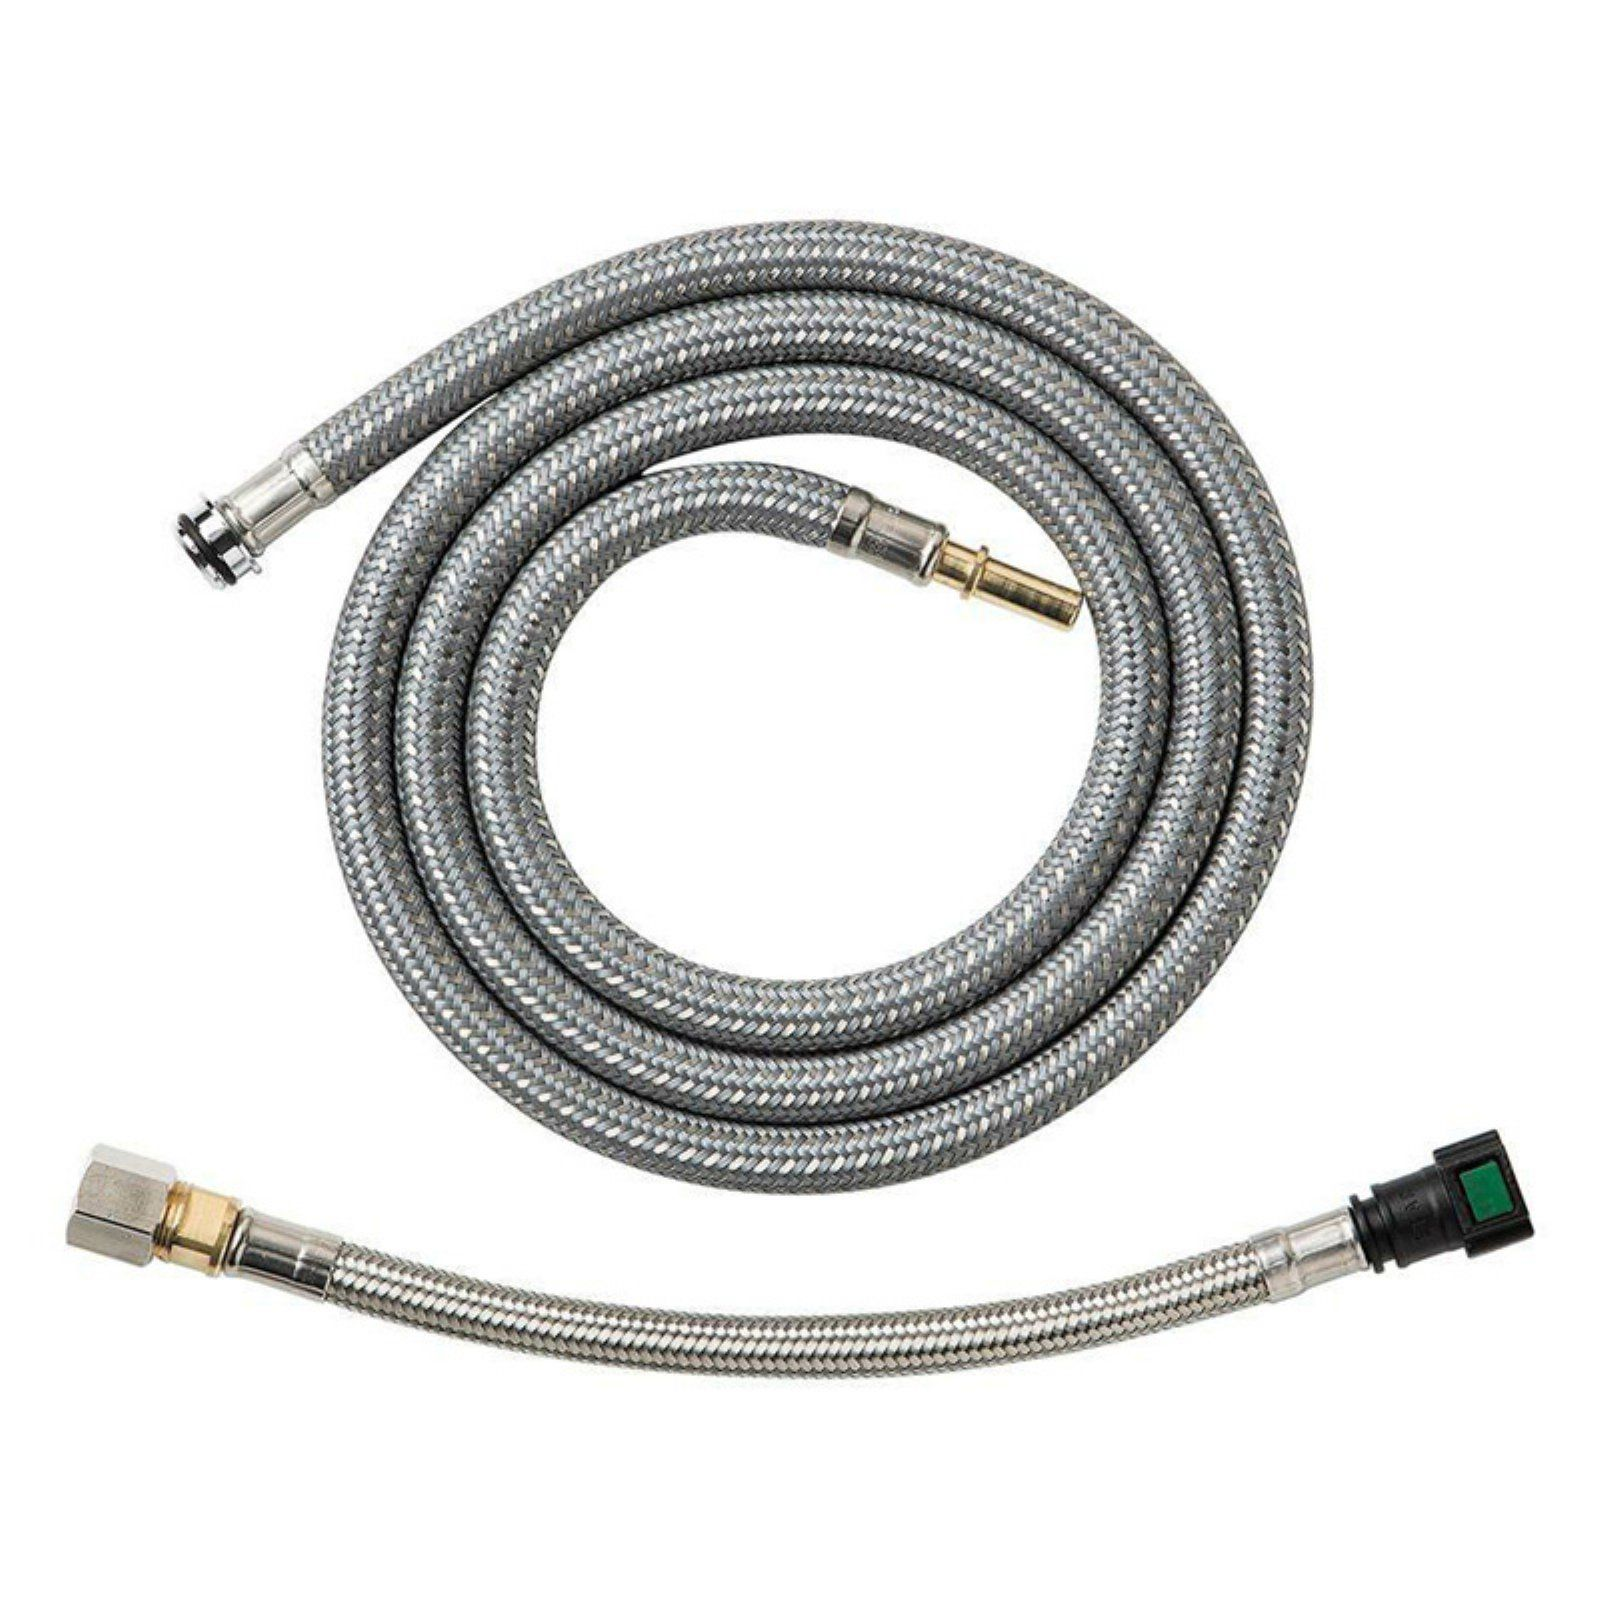 Hansgrohe 88624000 Pull Down Kitchen Faucet Hose